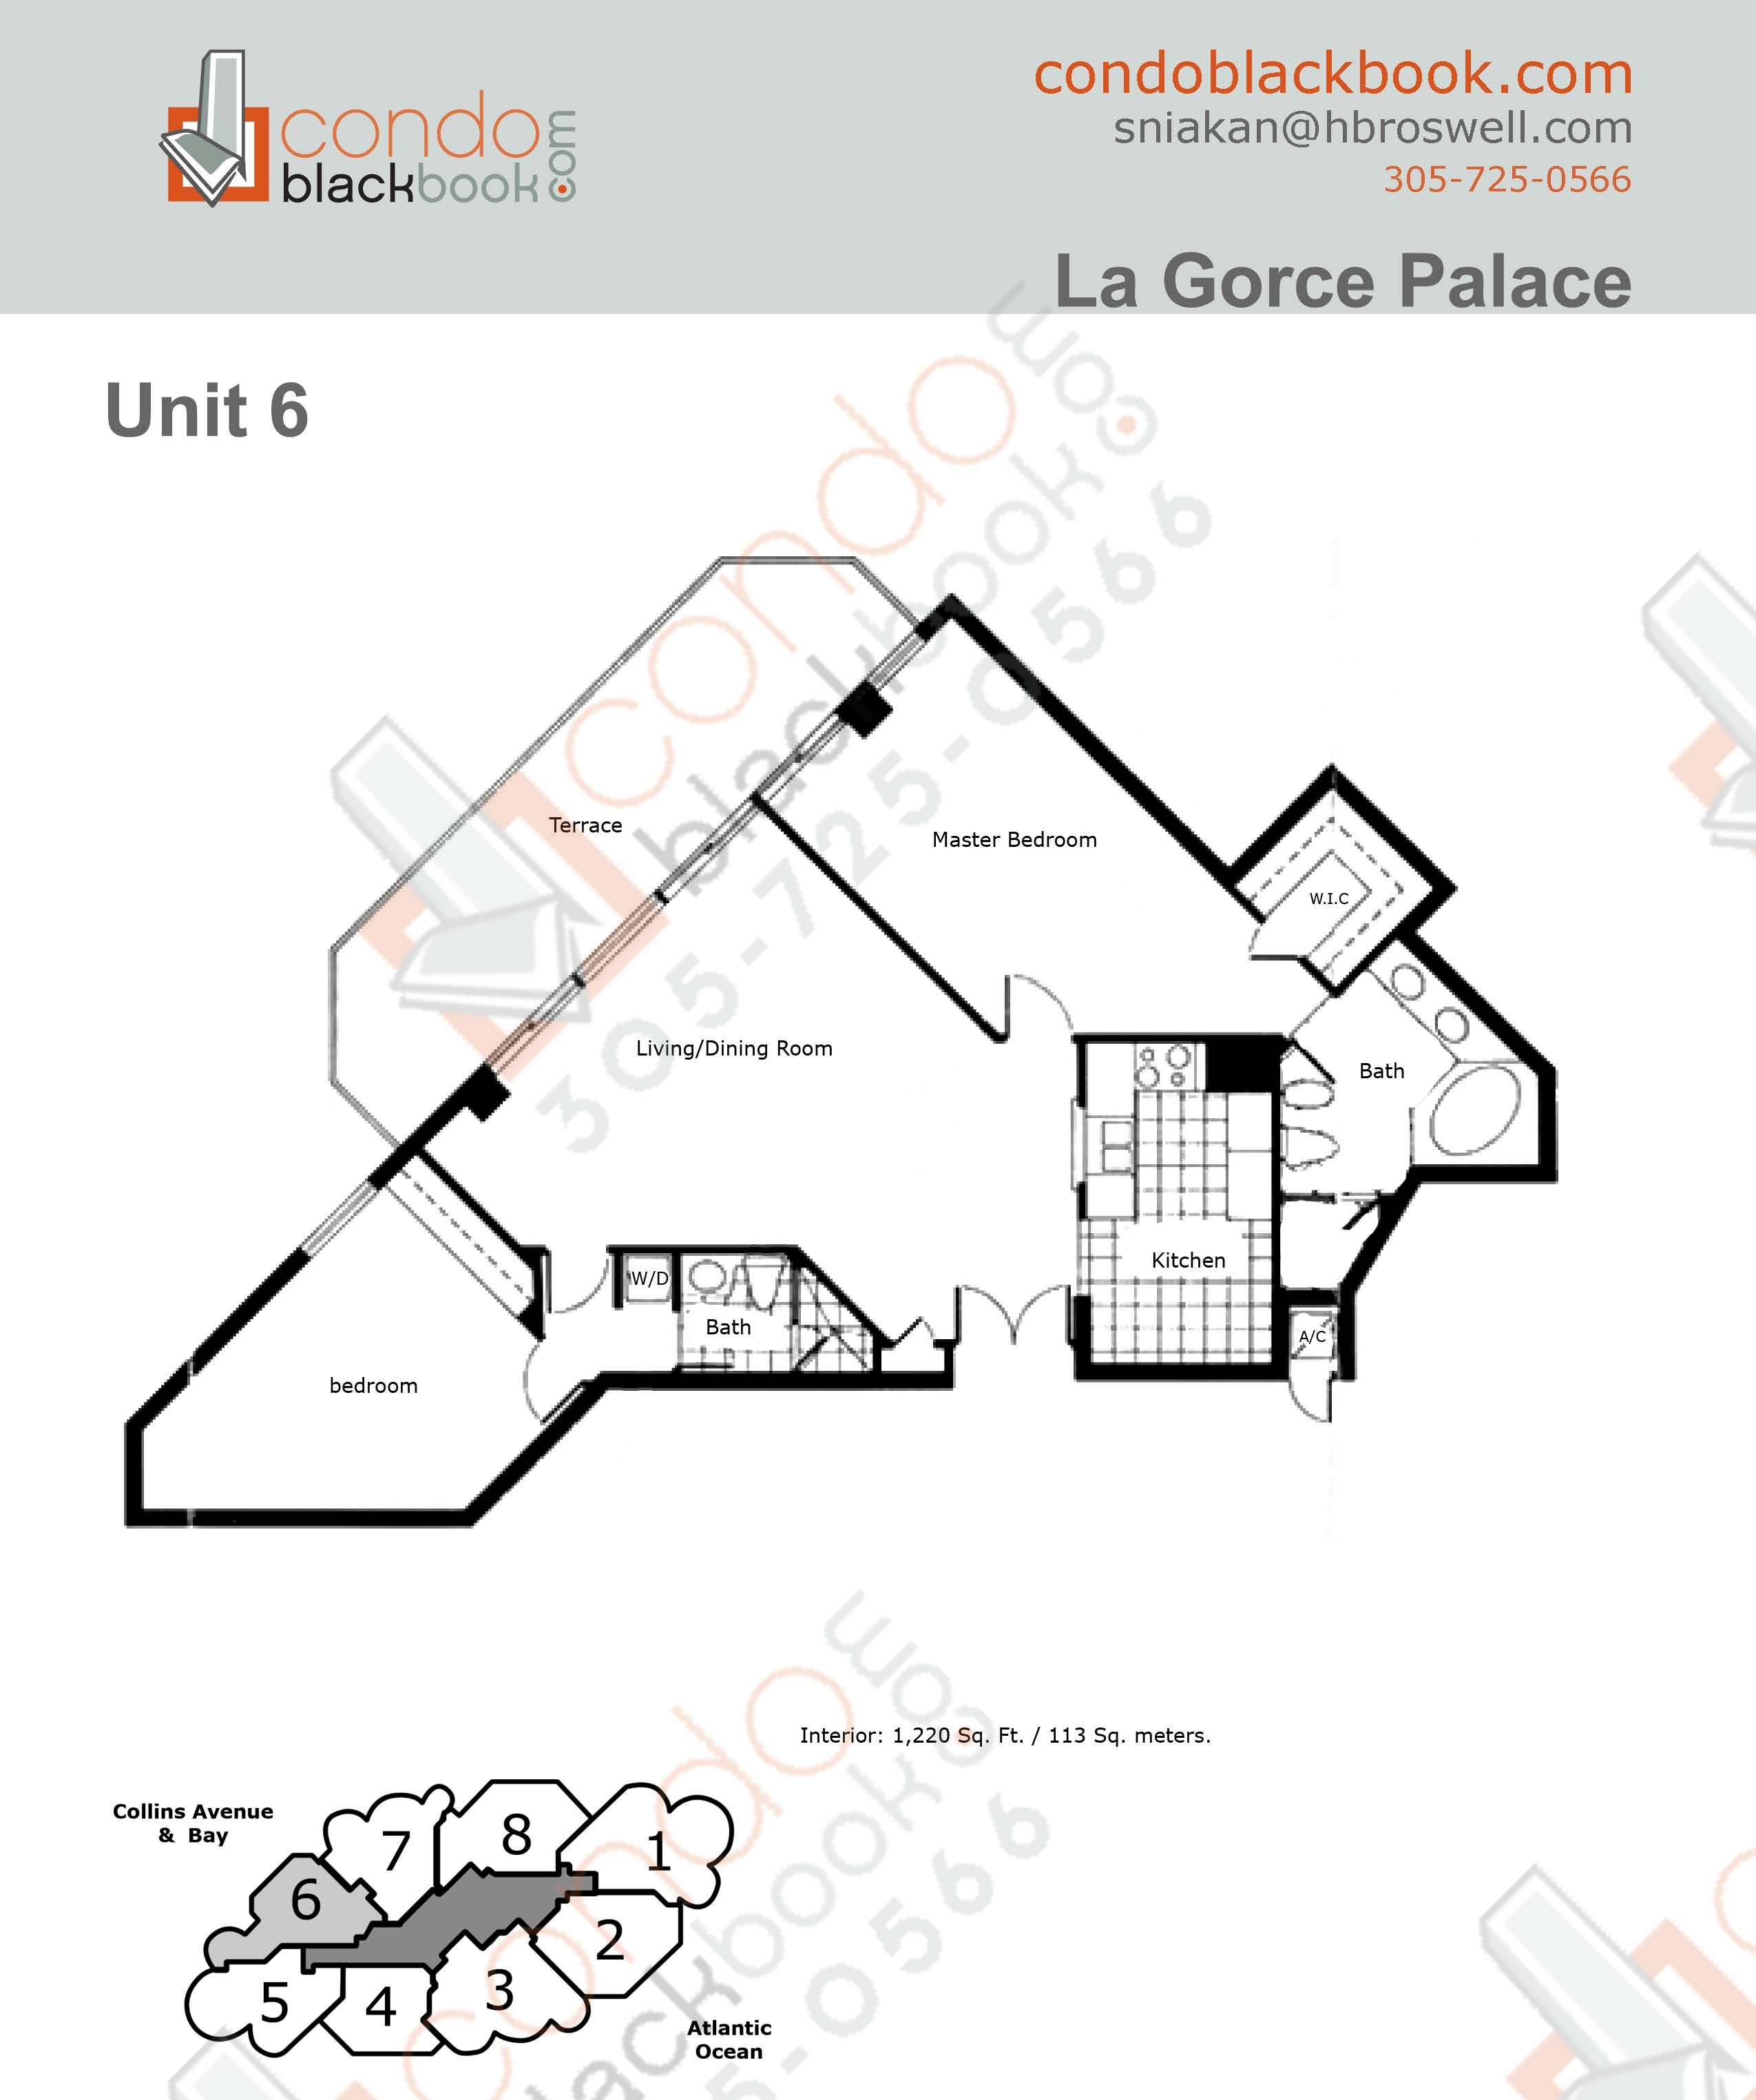 Floor plan for La Gorce North Beach Miami Beach, model 06, line 06, 2/2 bedrooms, 1220 sq ft